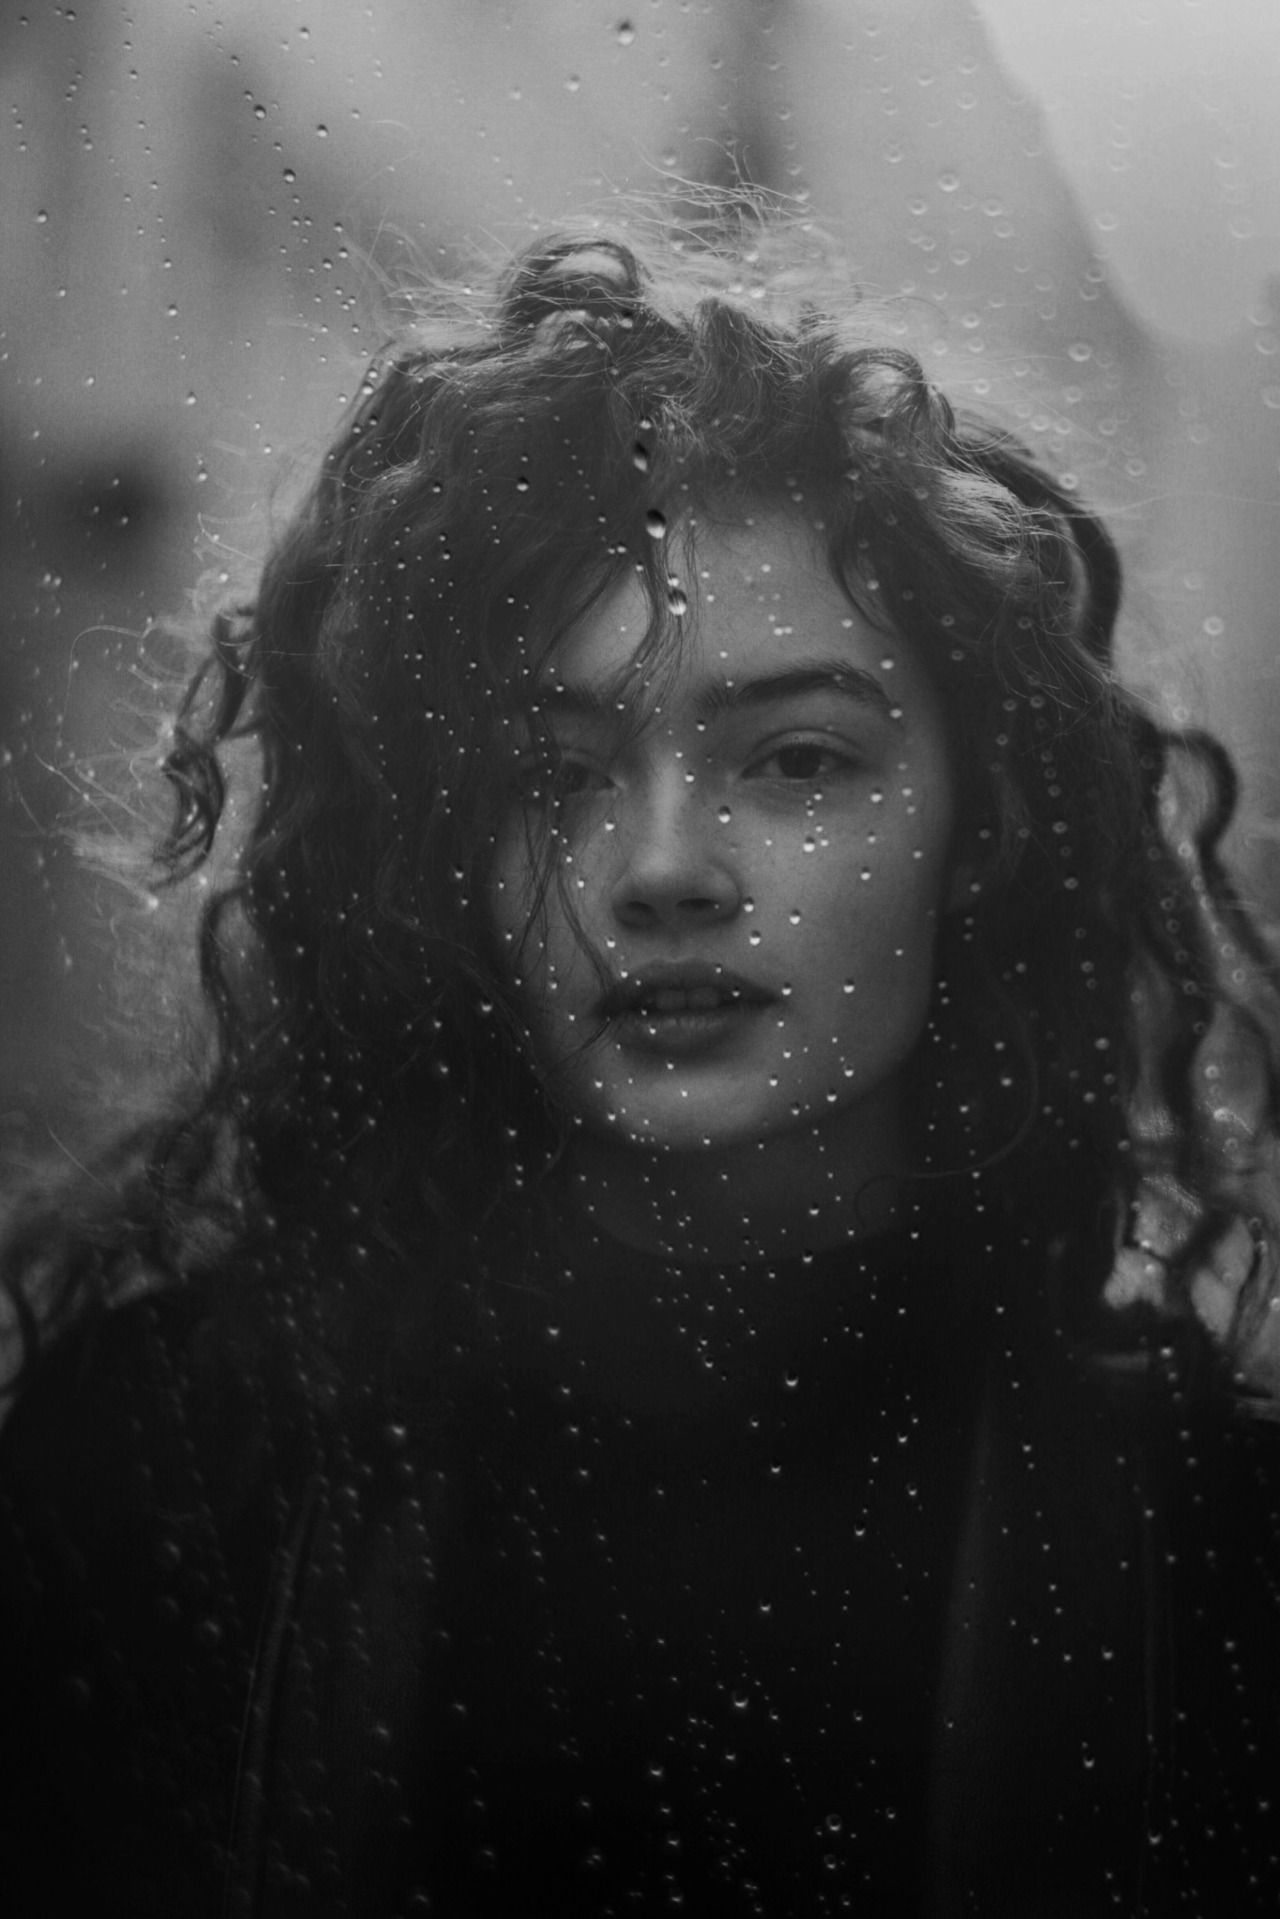 beautiful rainspattered black and white portrait from one